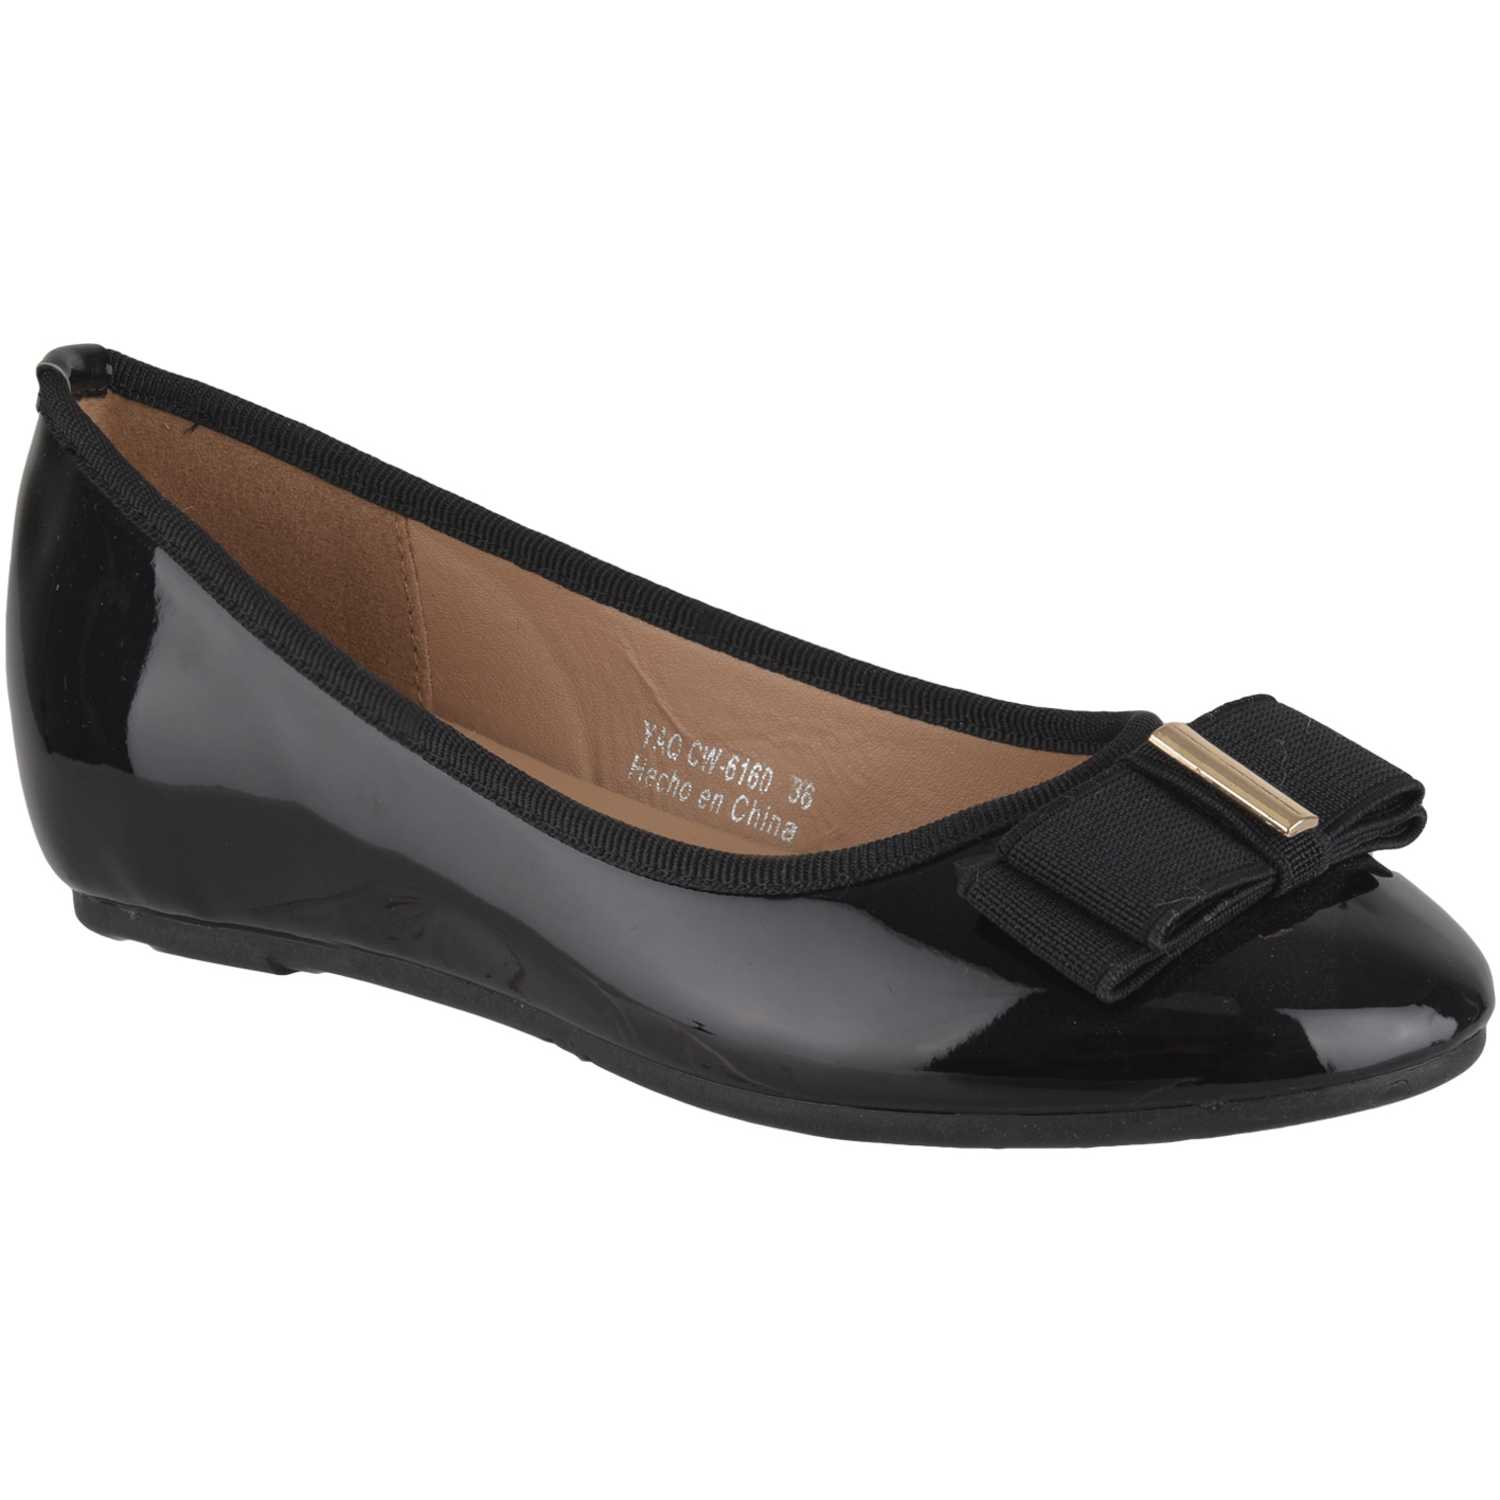 Platanitos cw-6160 Negro Estiletos y Pumps